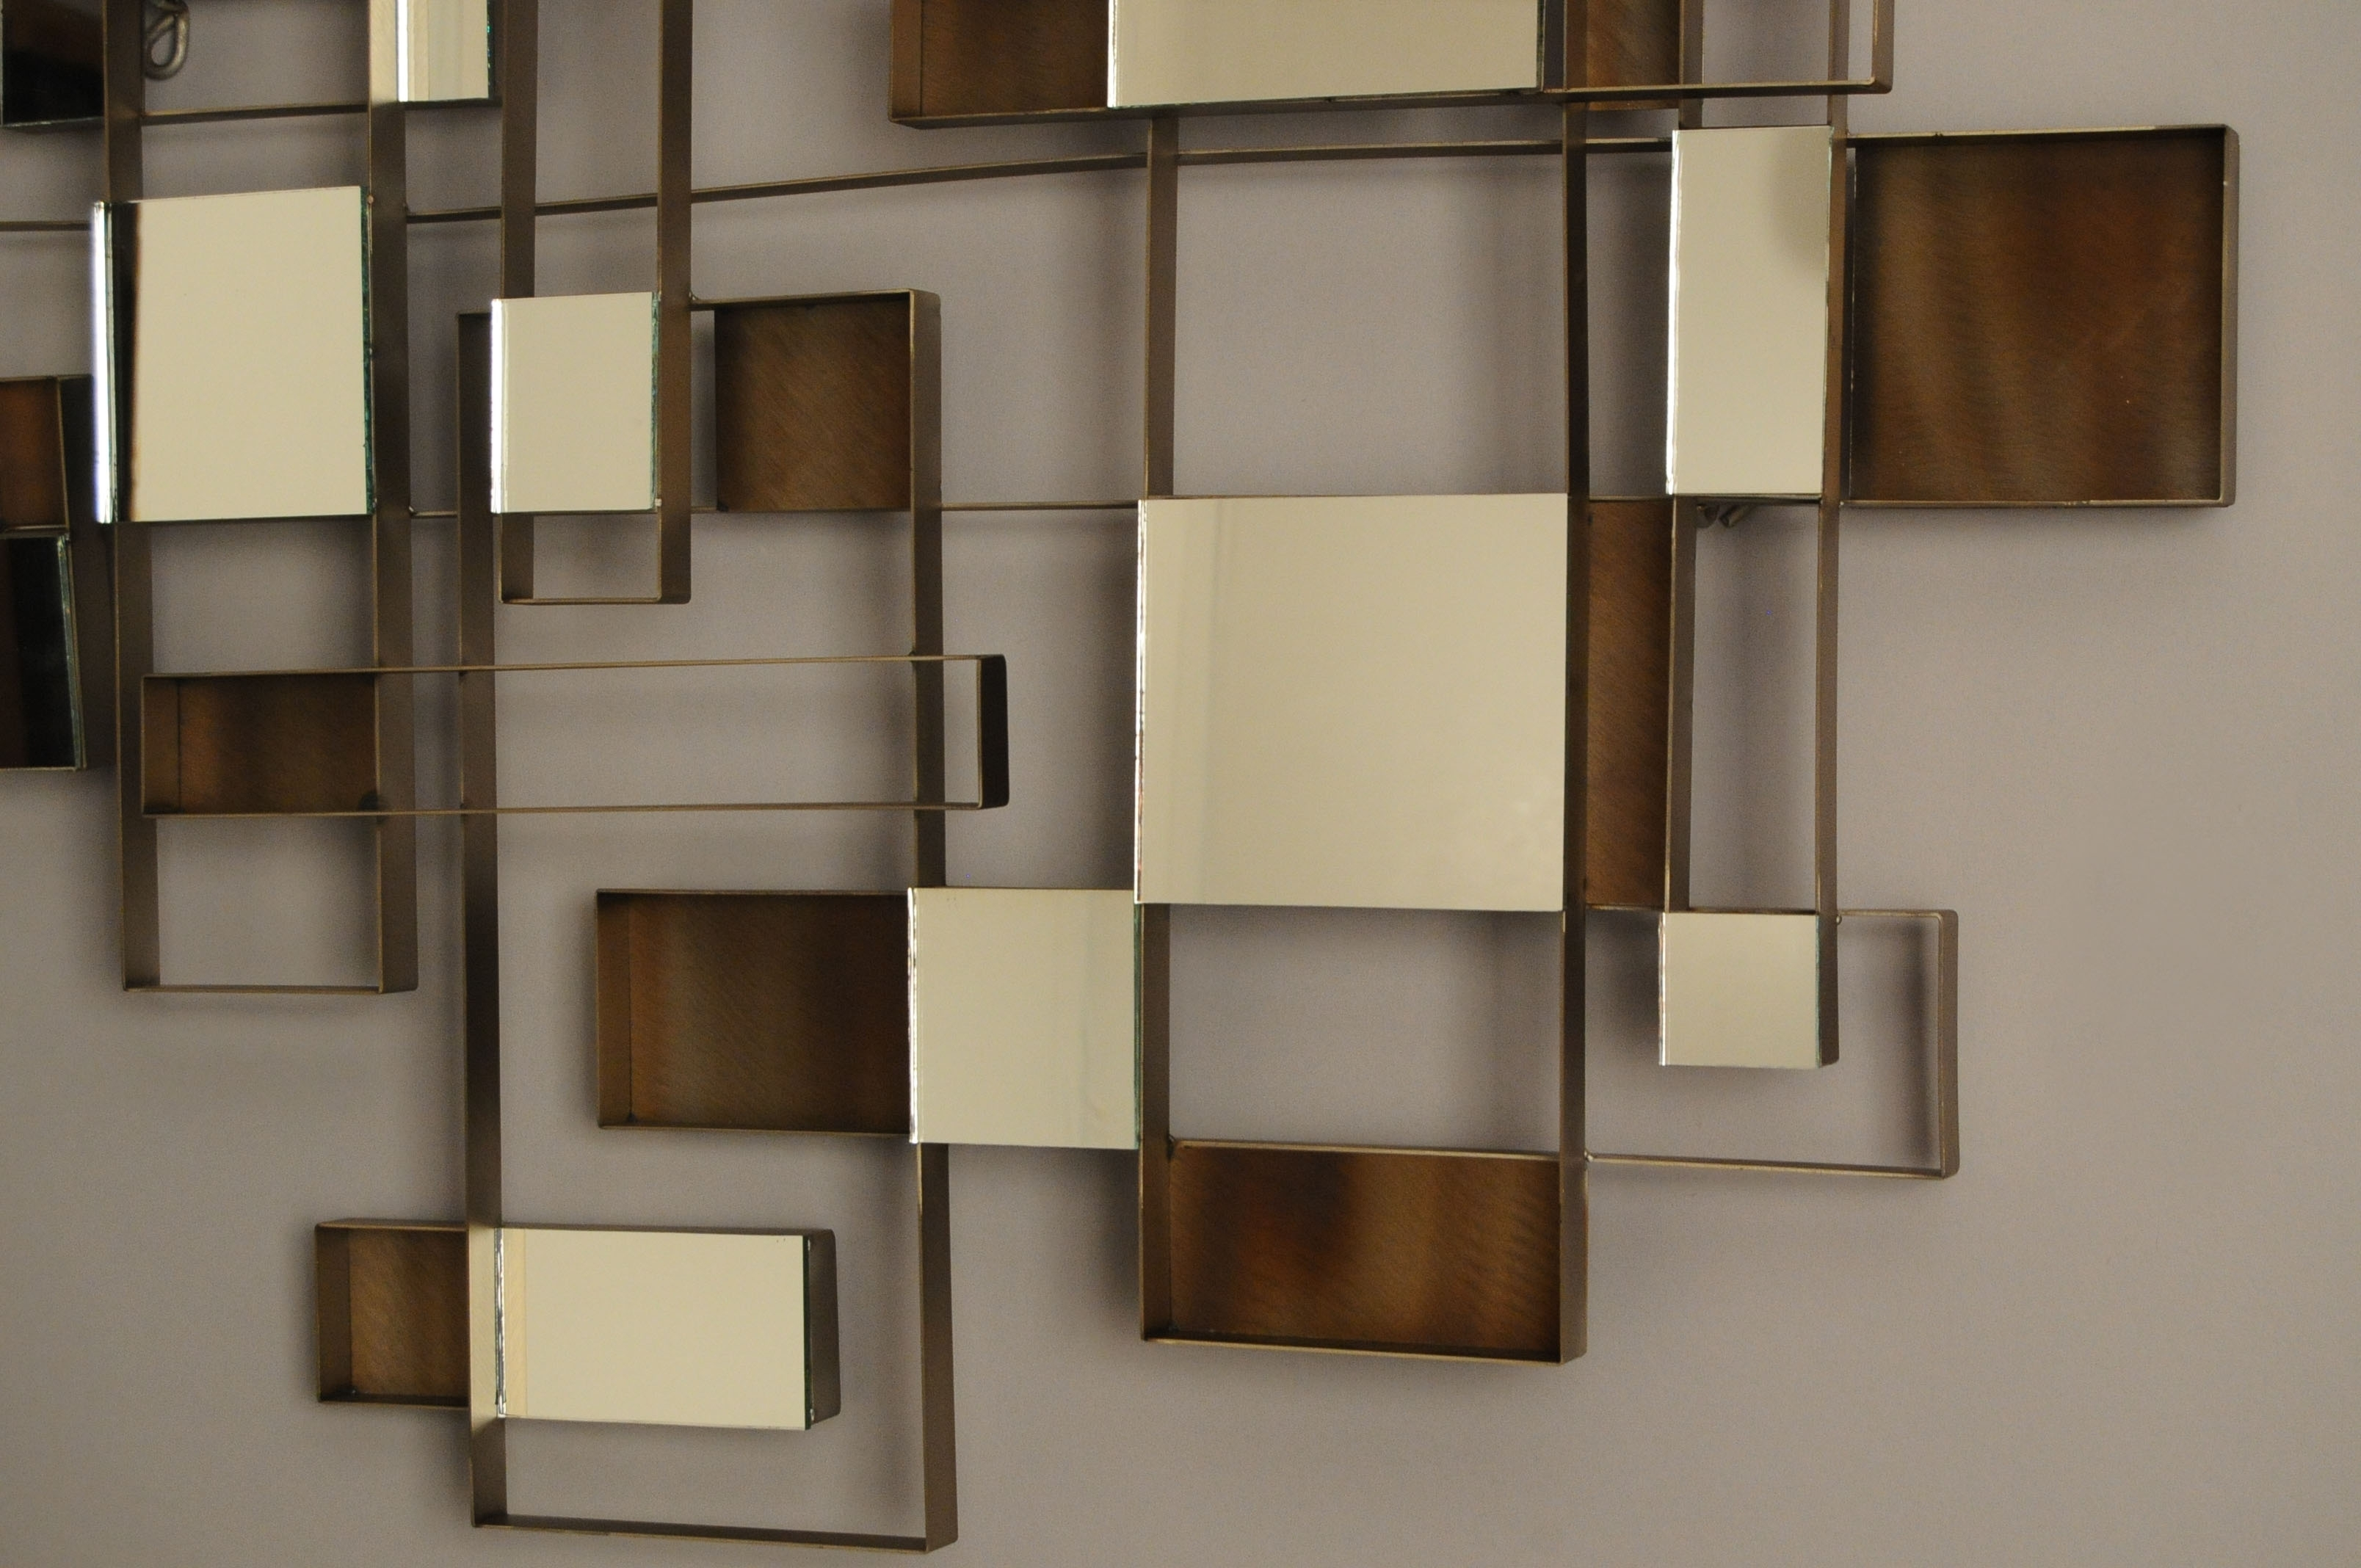 Wall Art Designs: Awesome Wall Art Mirror With Abstract Pattern For Most Recent Rectangular Wall Accents (View 15 of 15)